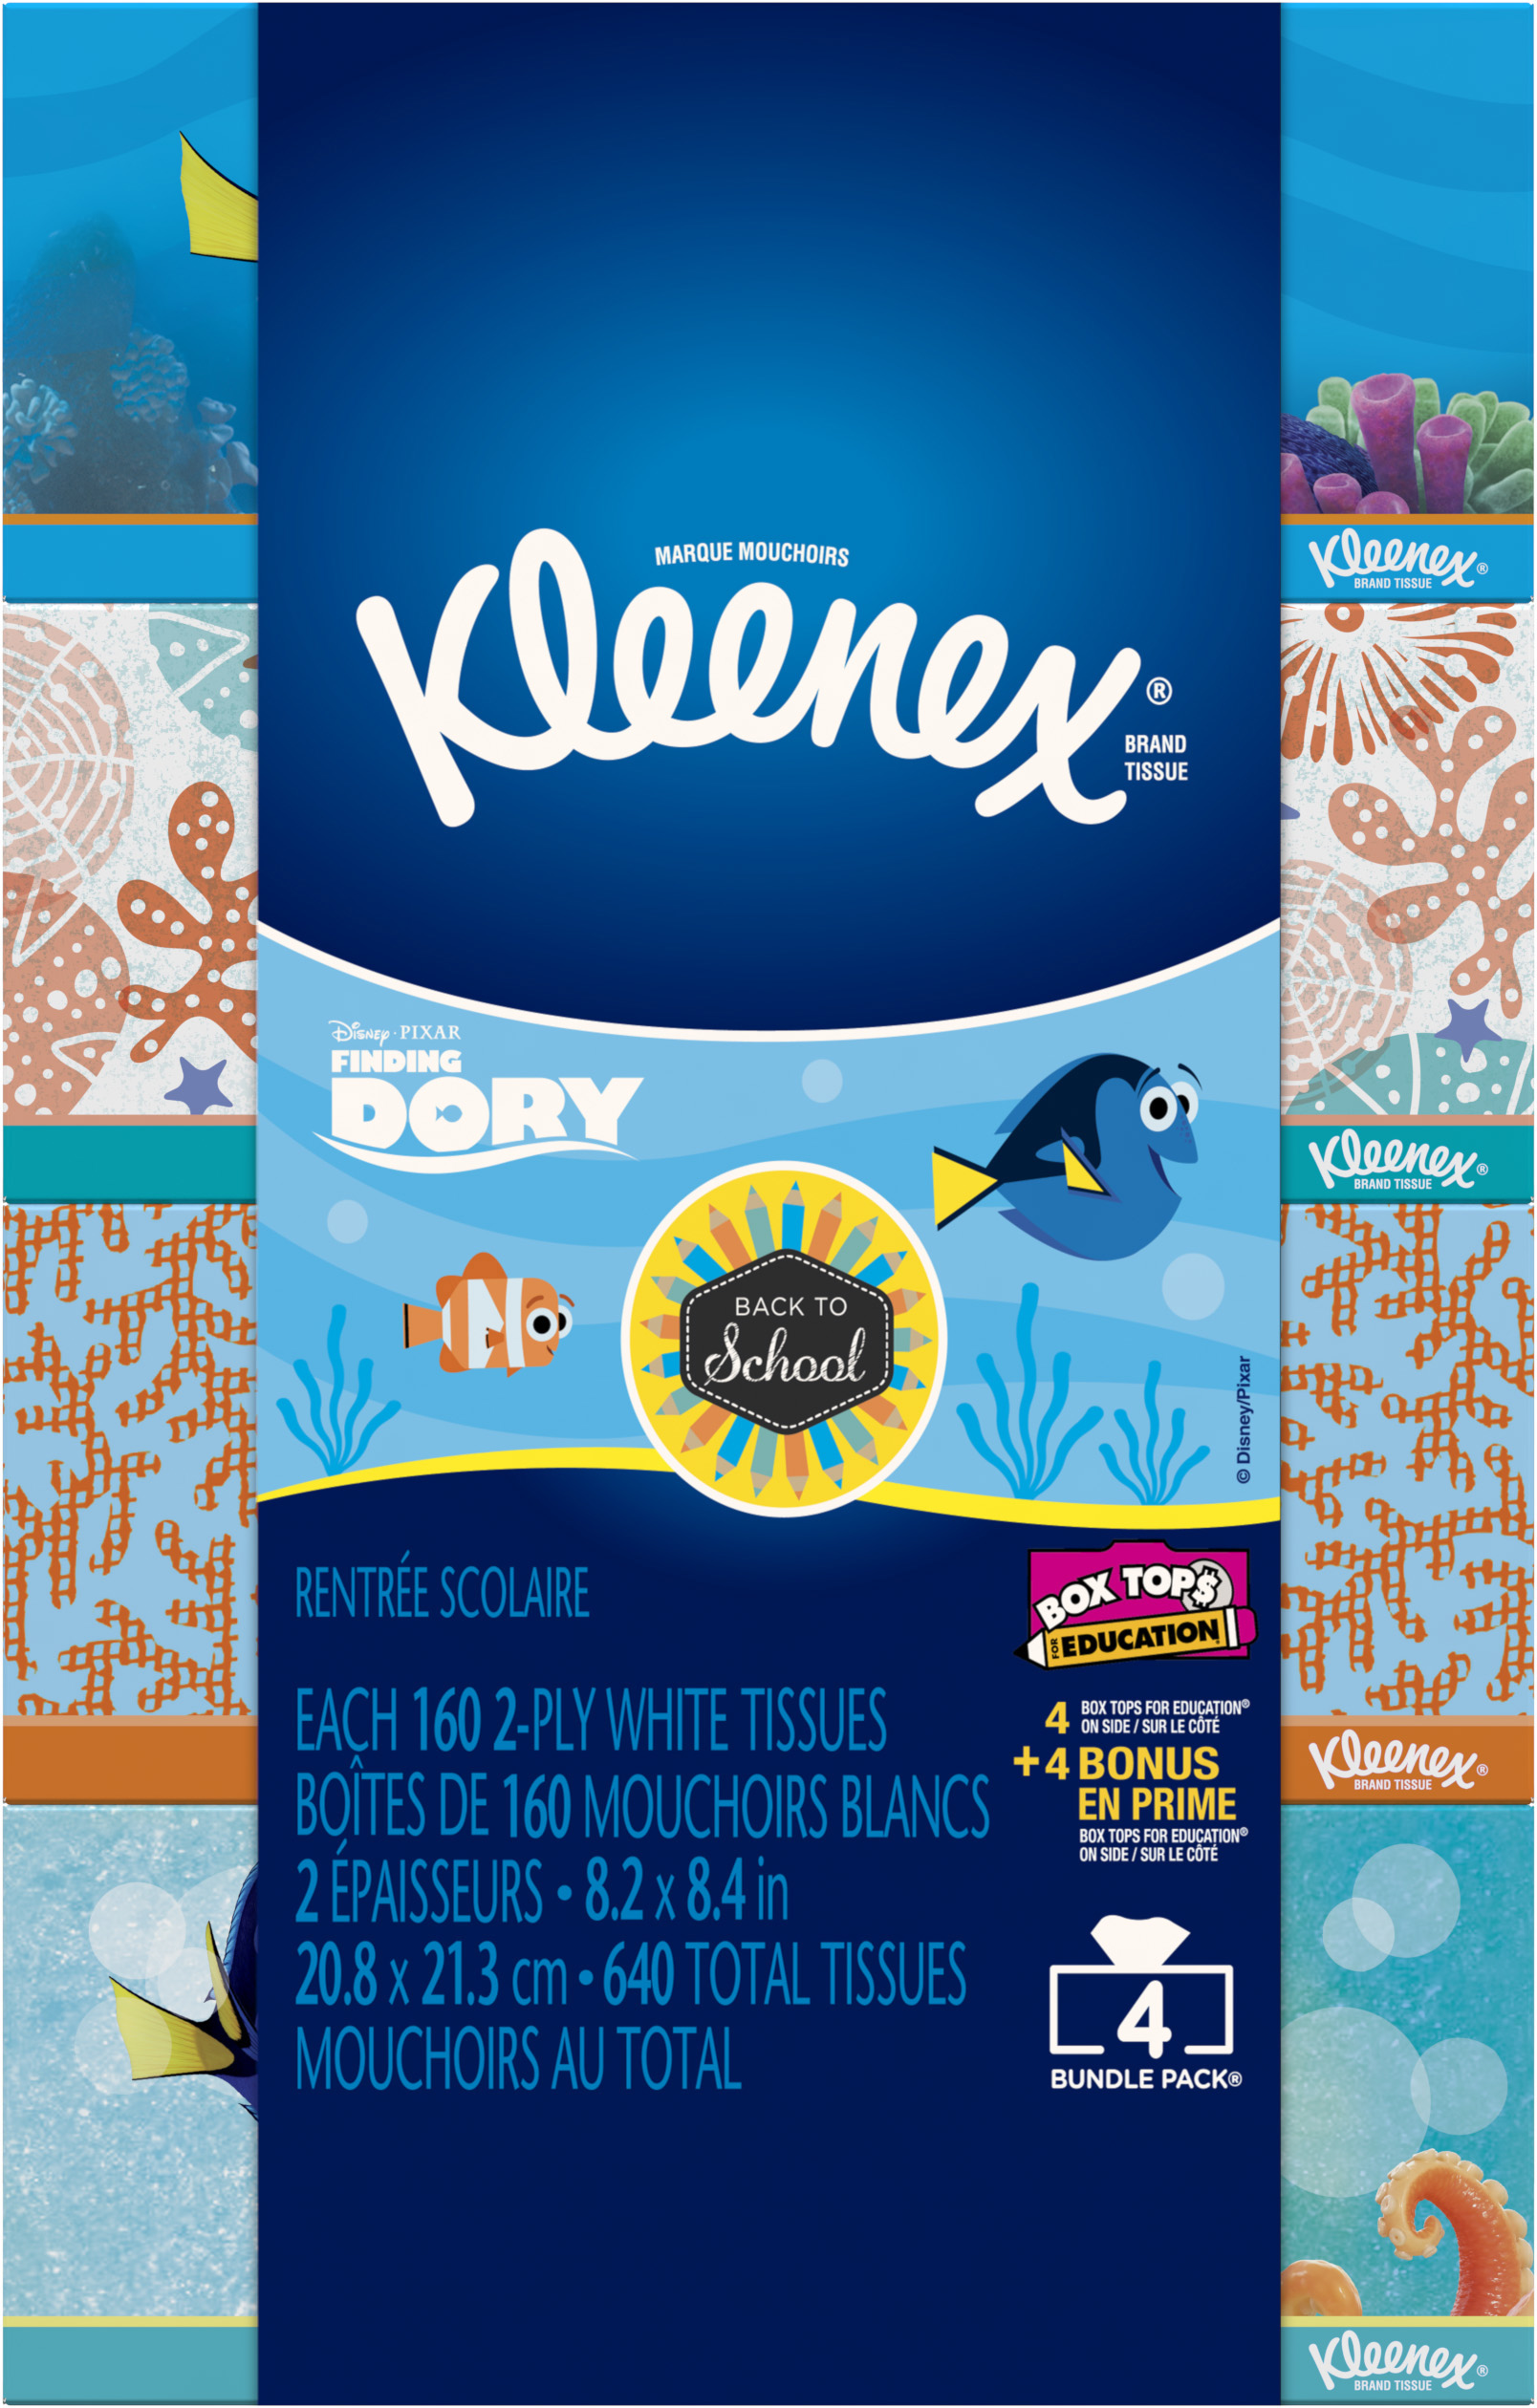 Kleenex® brand is challenging people to be more aware of overlooked, everyday opportunities to show that they care this back-to-school season and beyond.